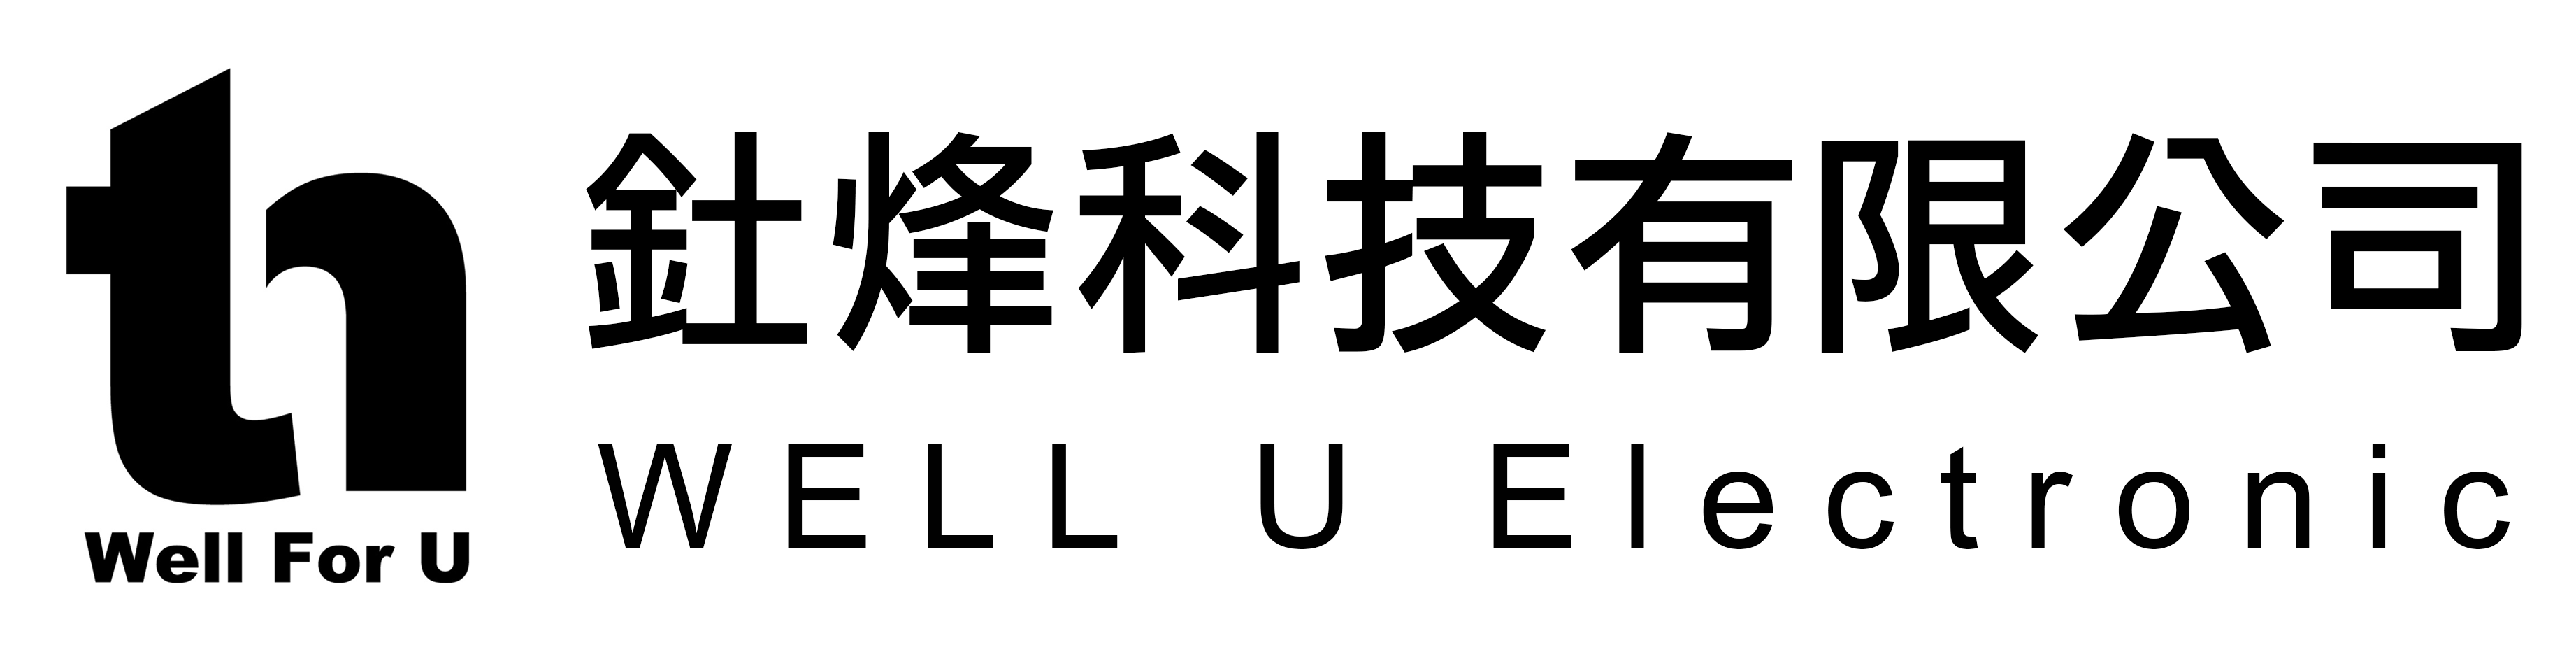 WELL U Electronic Co., Ltd 釷烽科技有限公司